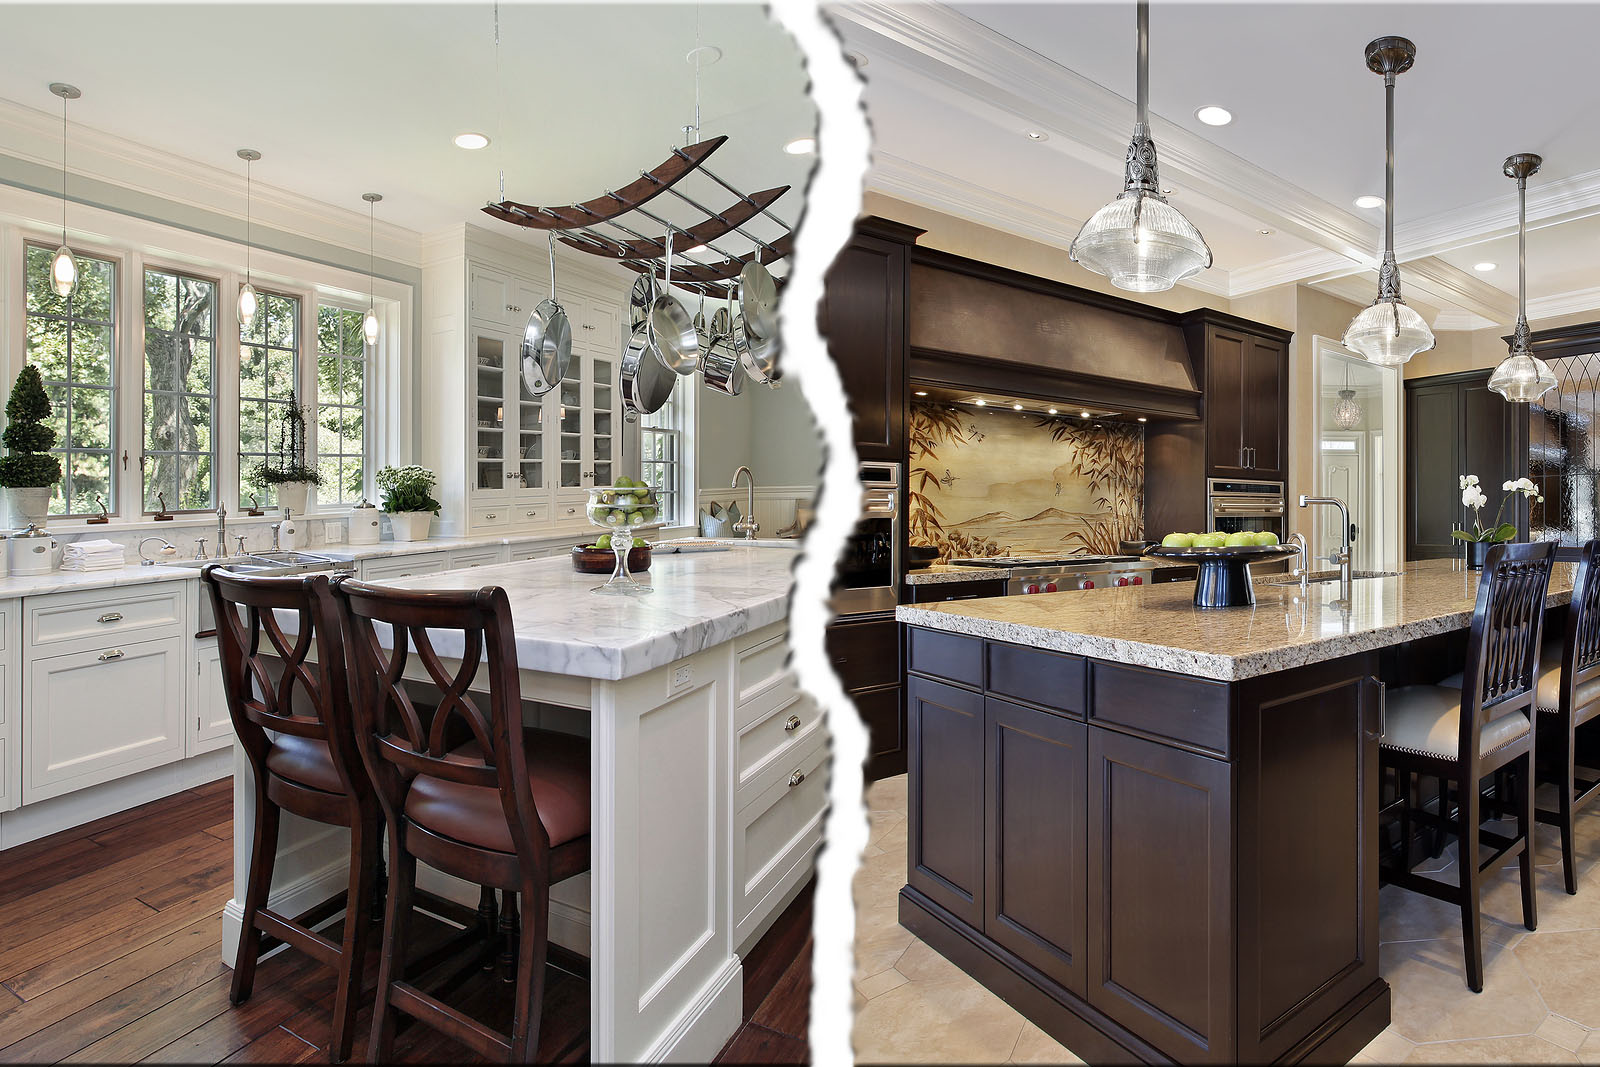 White Kitchen Vs Dark Kitchen fresh coat of paint: light vs dark kitchens